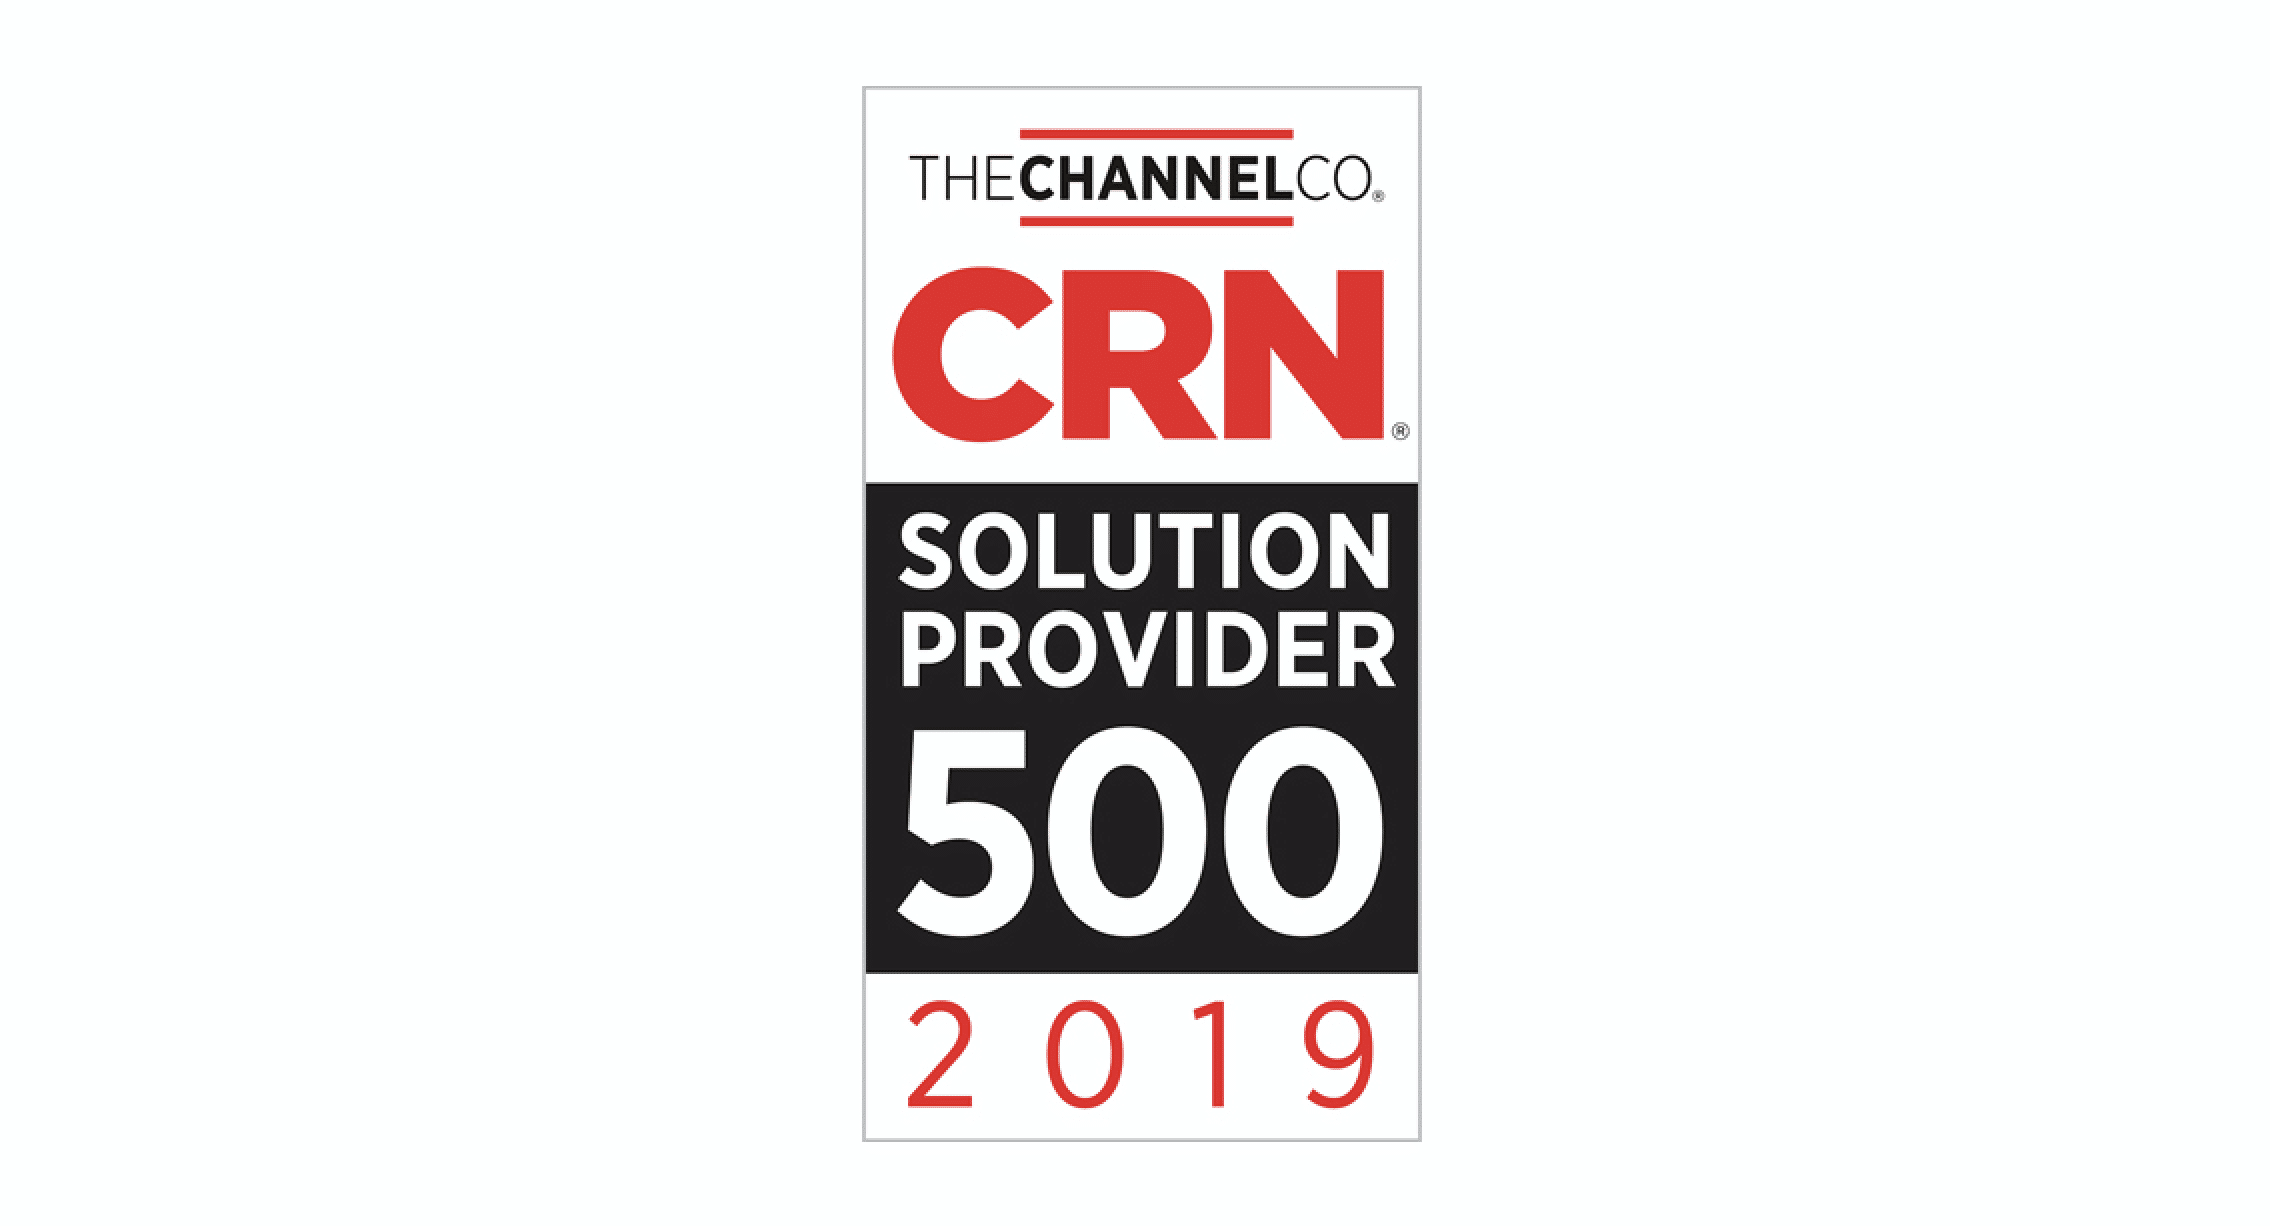 CRN Solution Providers 2019